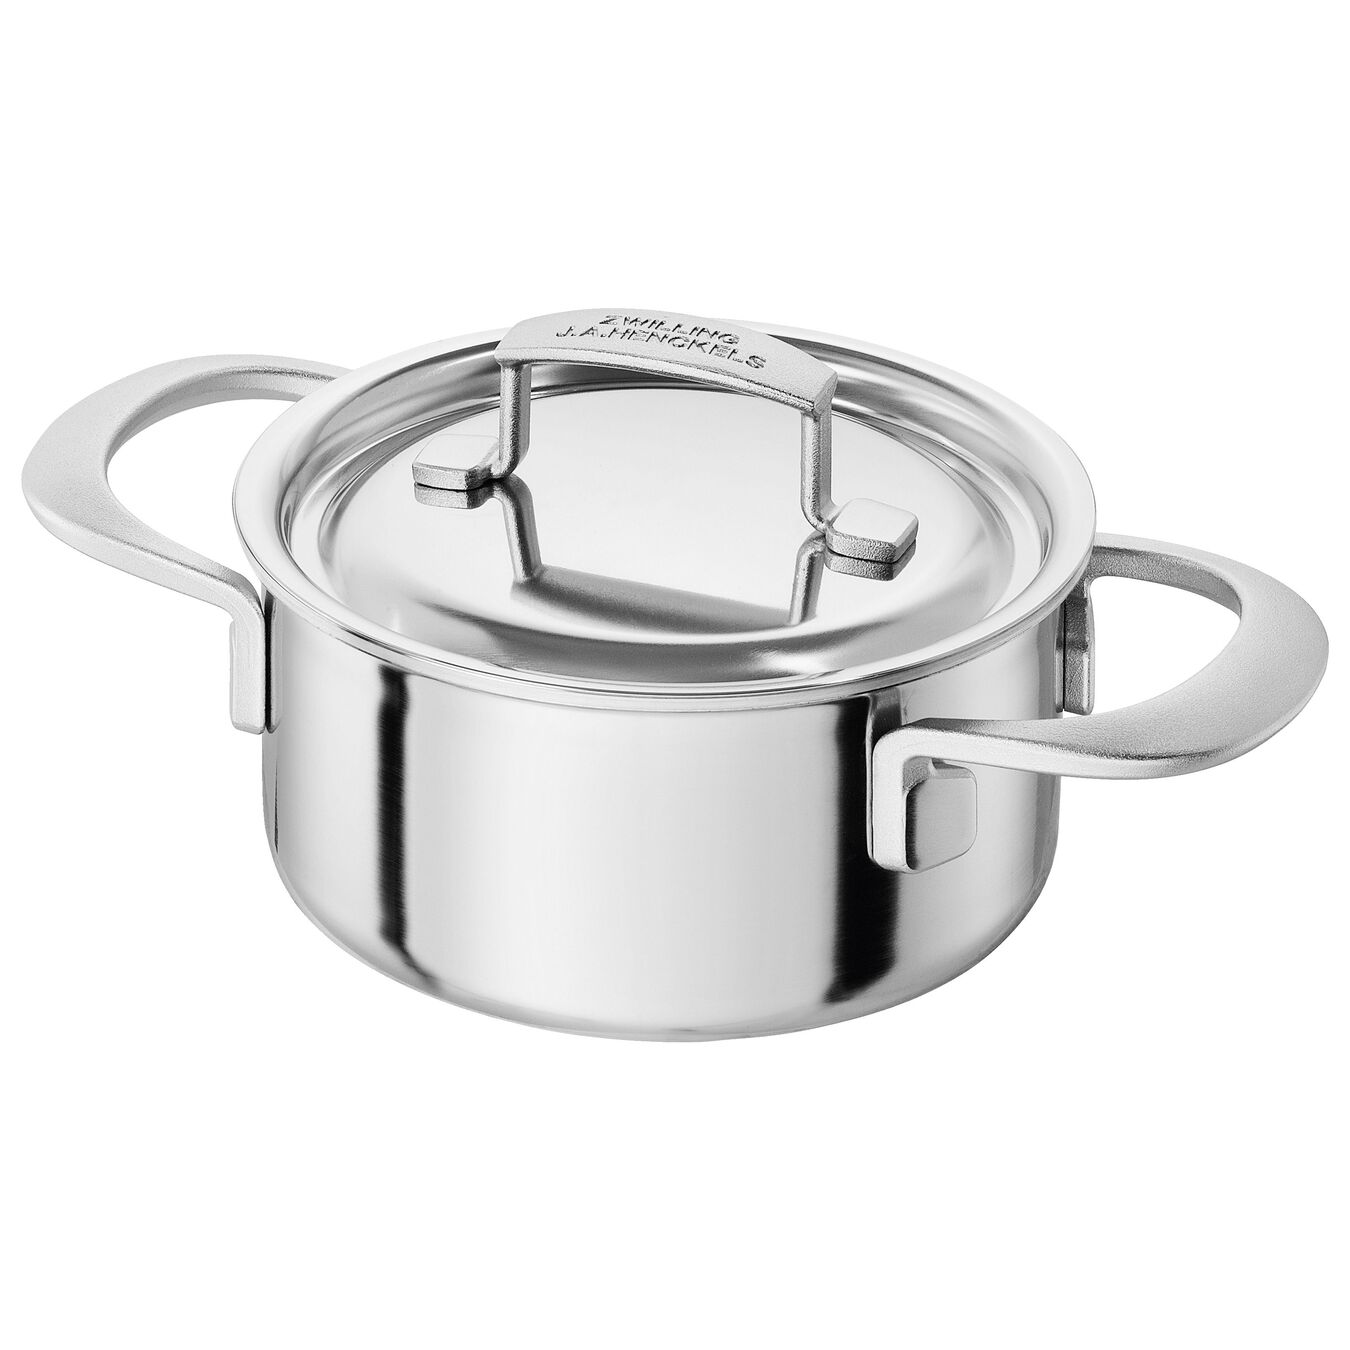 1,5 l 18/10 Stainless Steel Casserole,,large 1